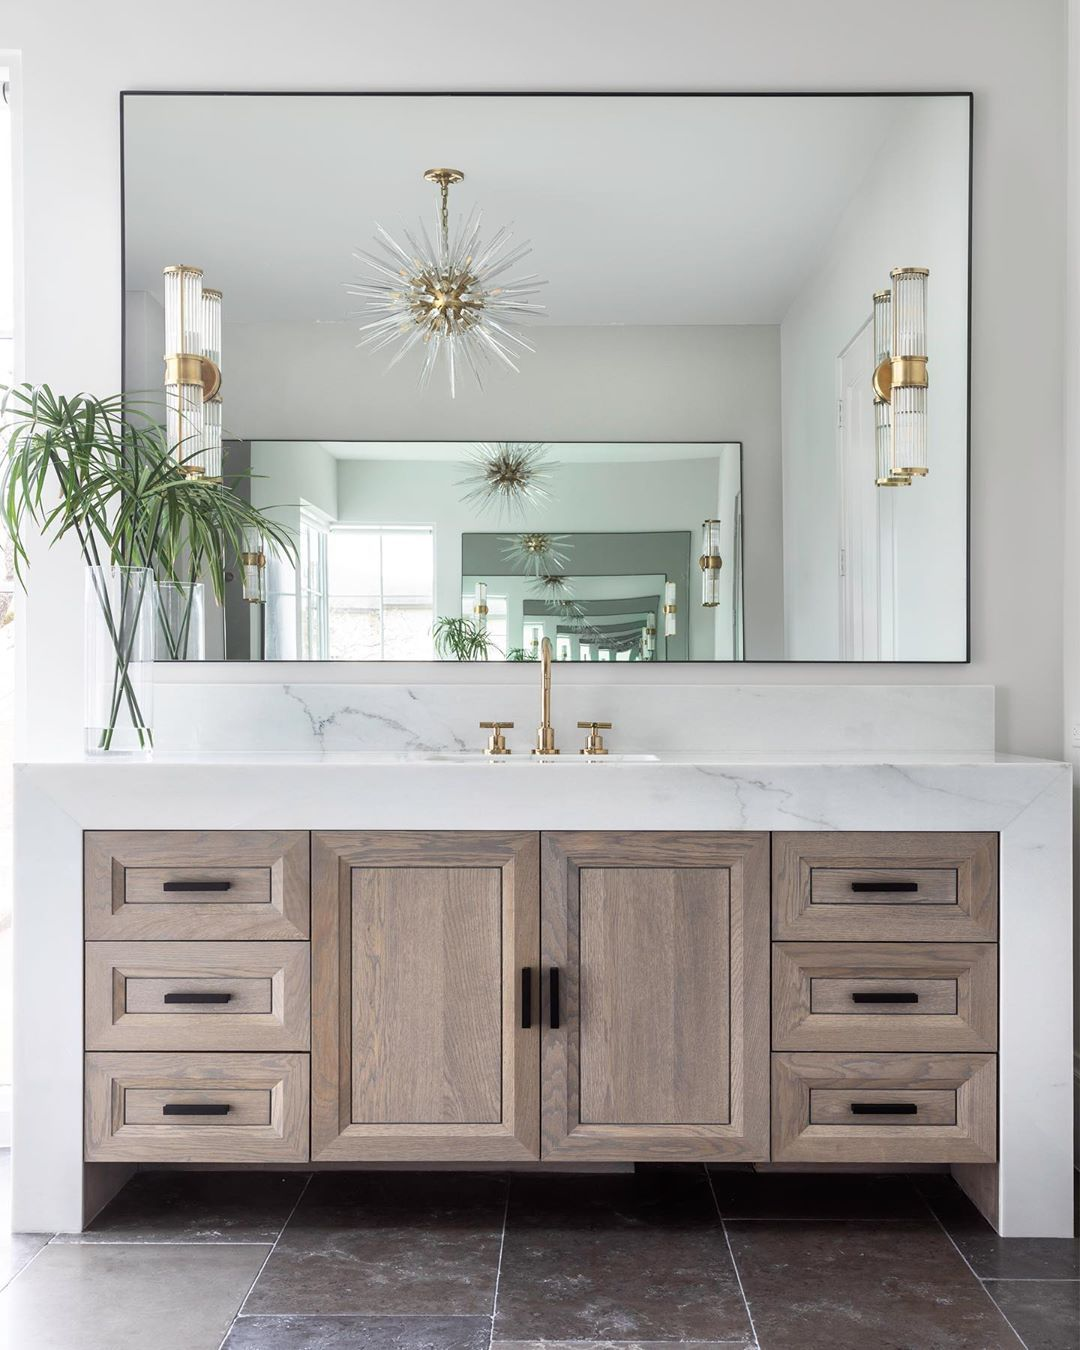 "KerryKirkPhoto on Instagram: ""Still swooning over this bathroom vanity & cabinet situation by @davidjames_custombuilder and @tc_interiors So beautifully done! Bravo!"""